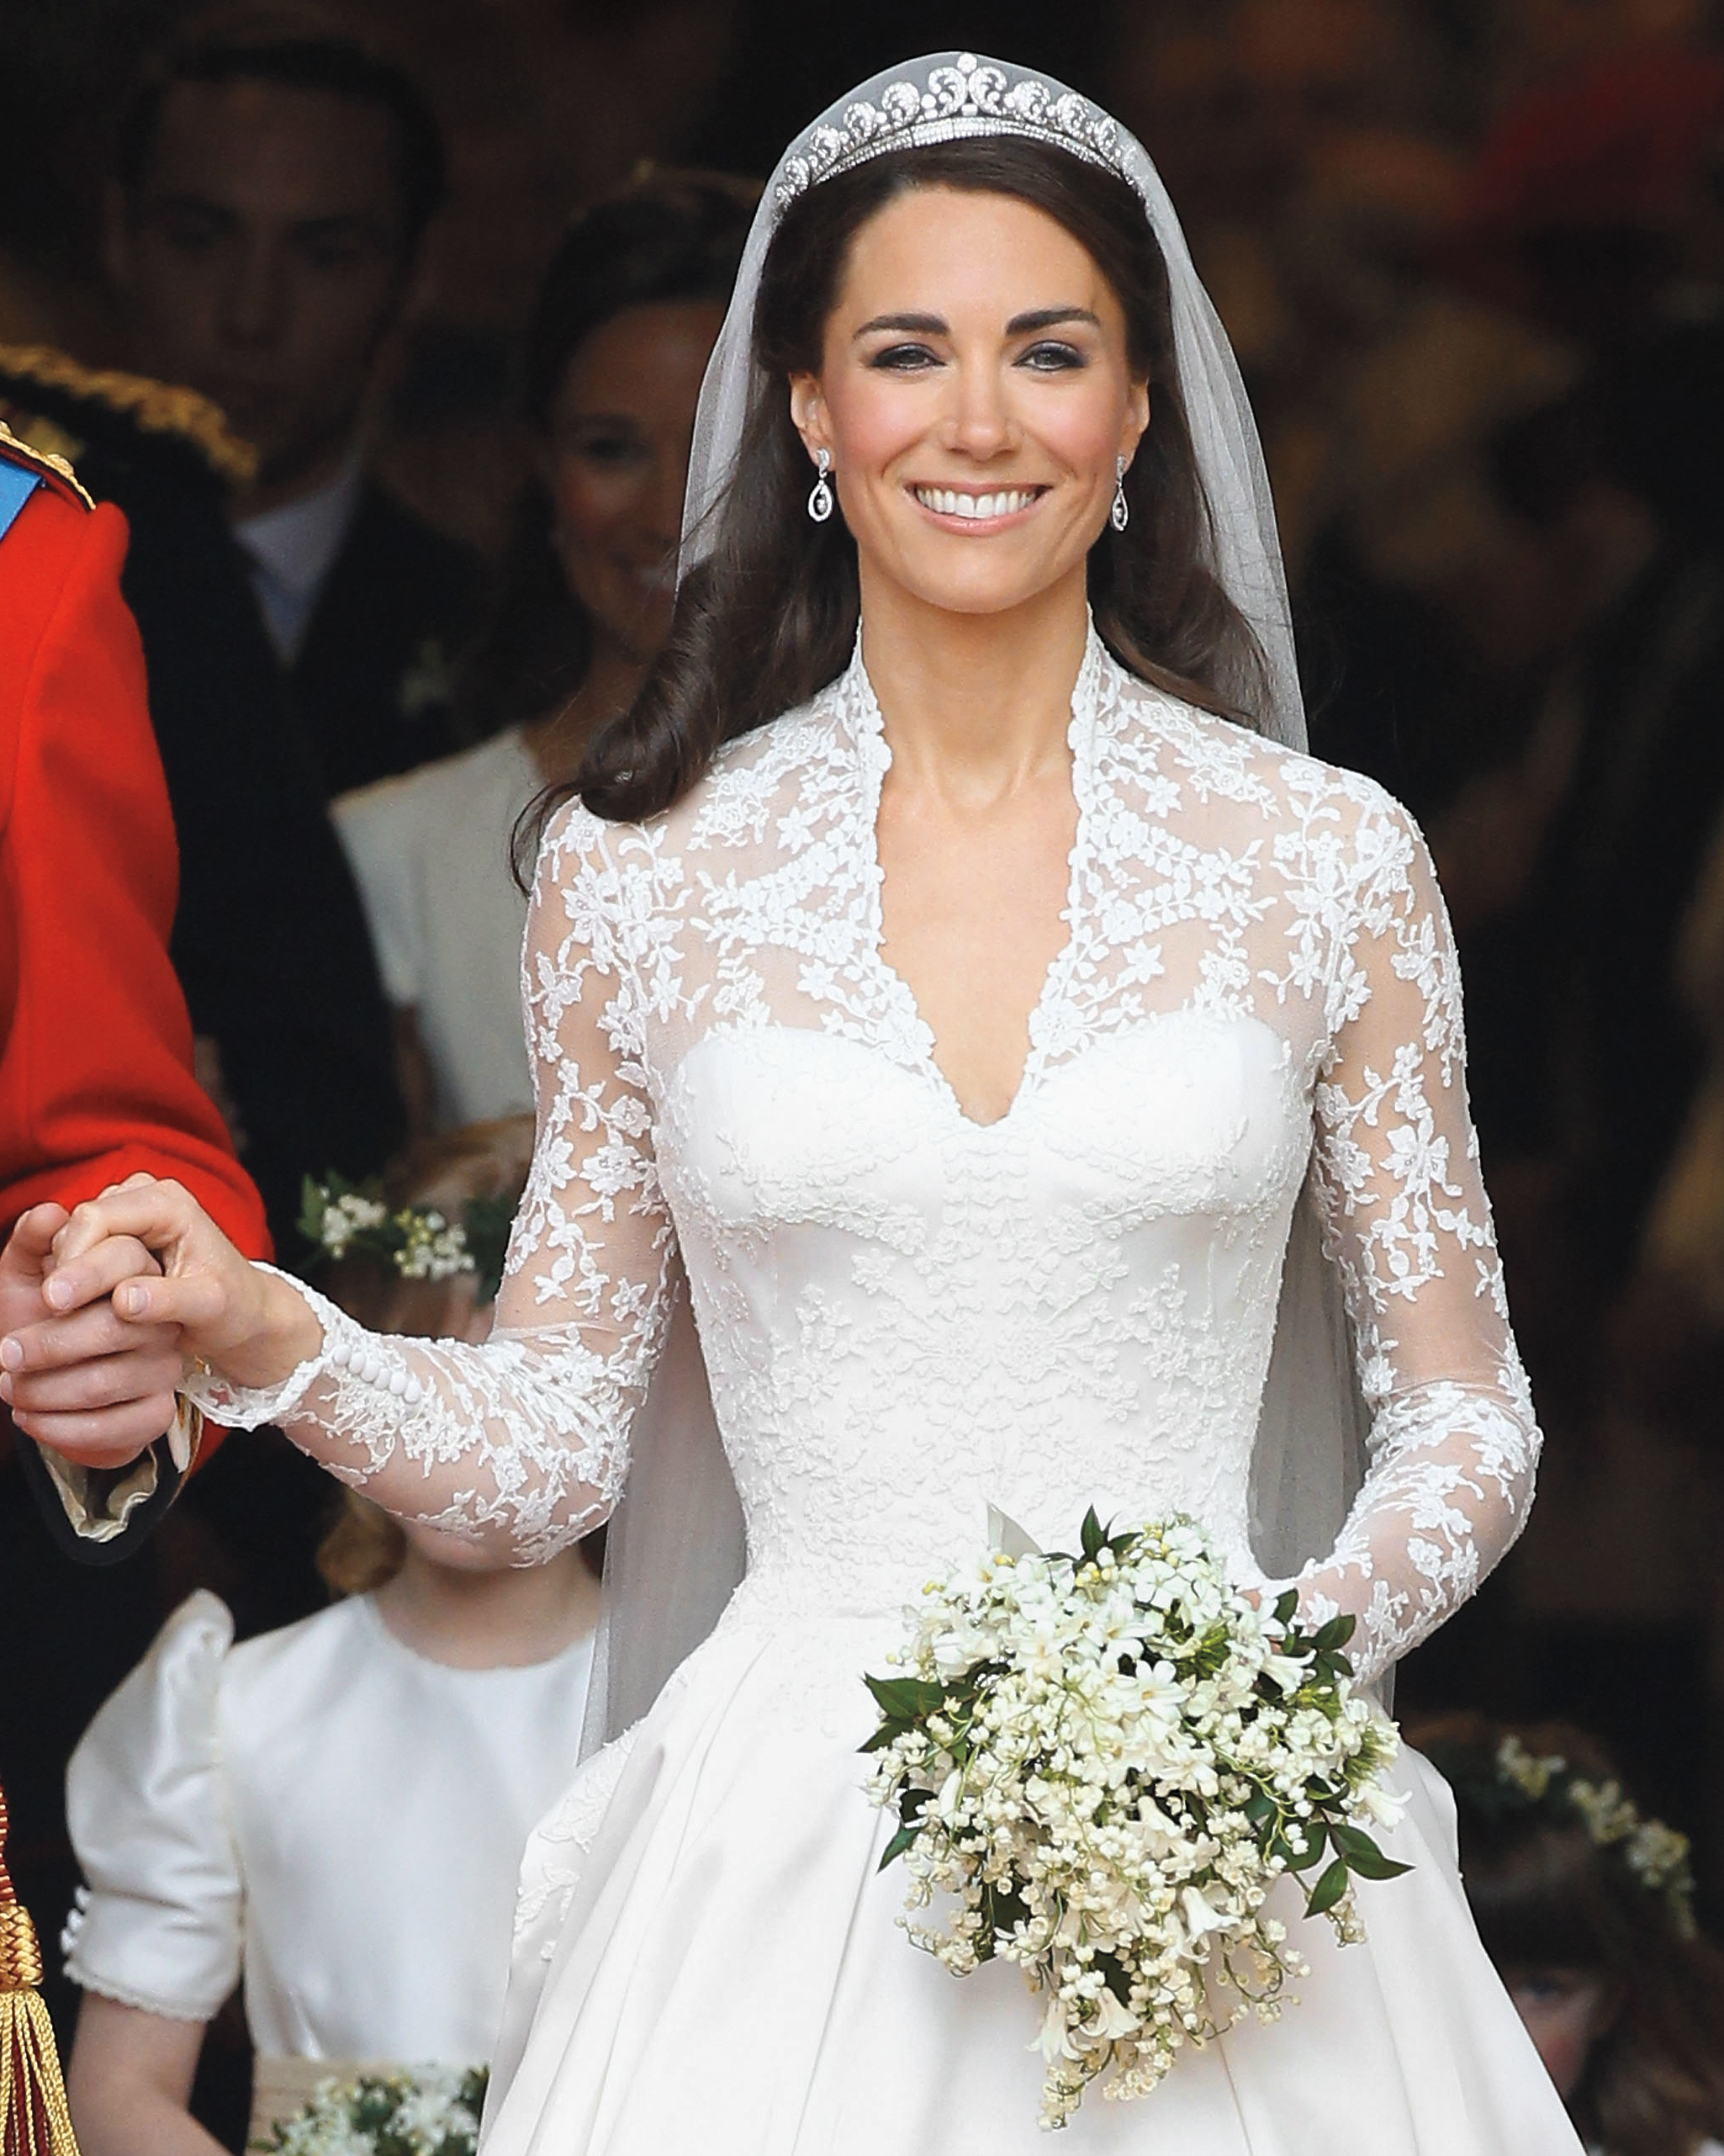 getty-images-113287615-kate-d111641.jpg